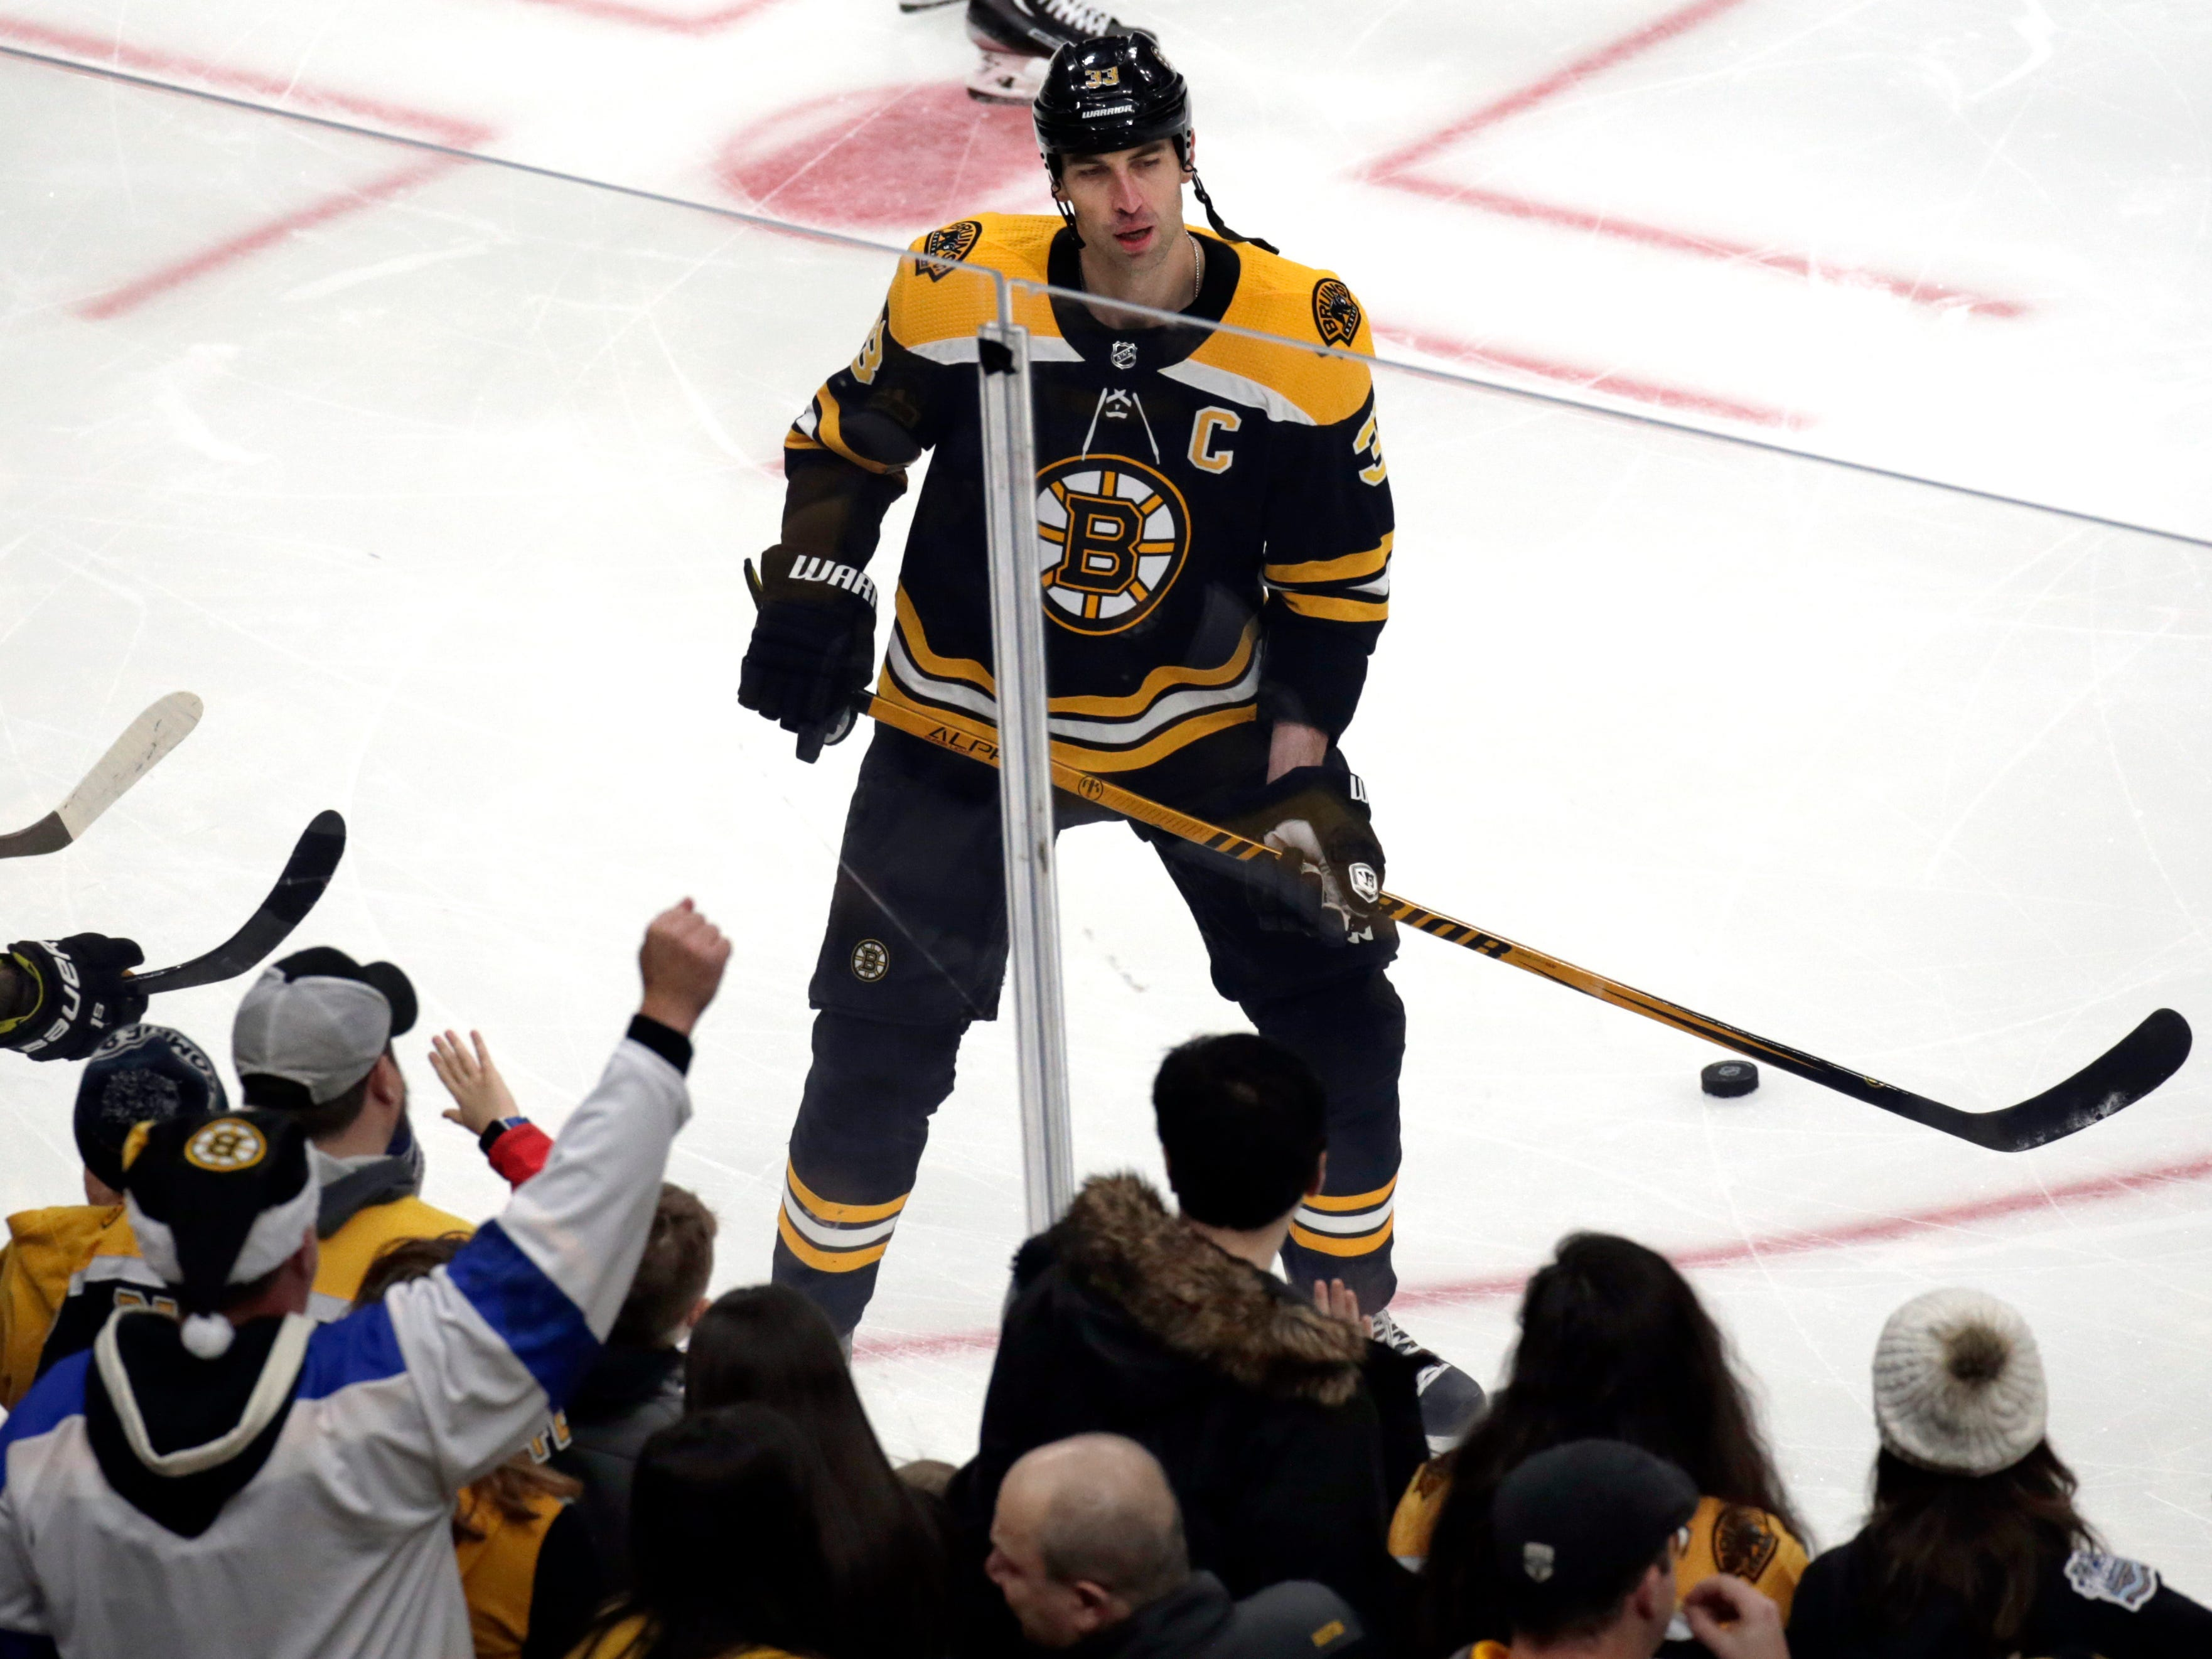 Fans gesture to Boston Bruins defenseman Zdeno Chara as he warms up prior to the team's NHL hockey game against the New Jersey Devils, Thursday, Dec. 27, 2018, in Boston. Chara is back after missing  19 games with an injury.